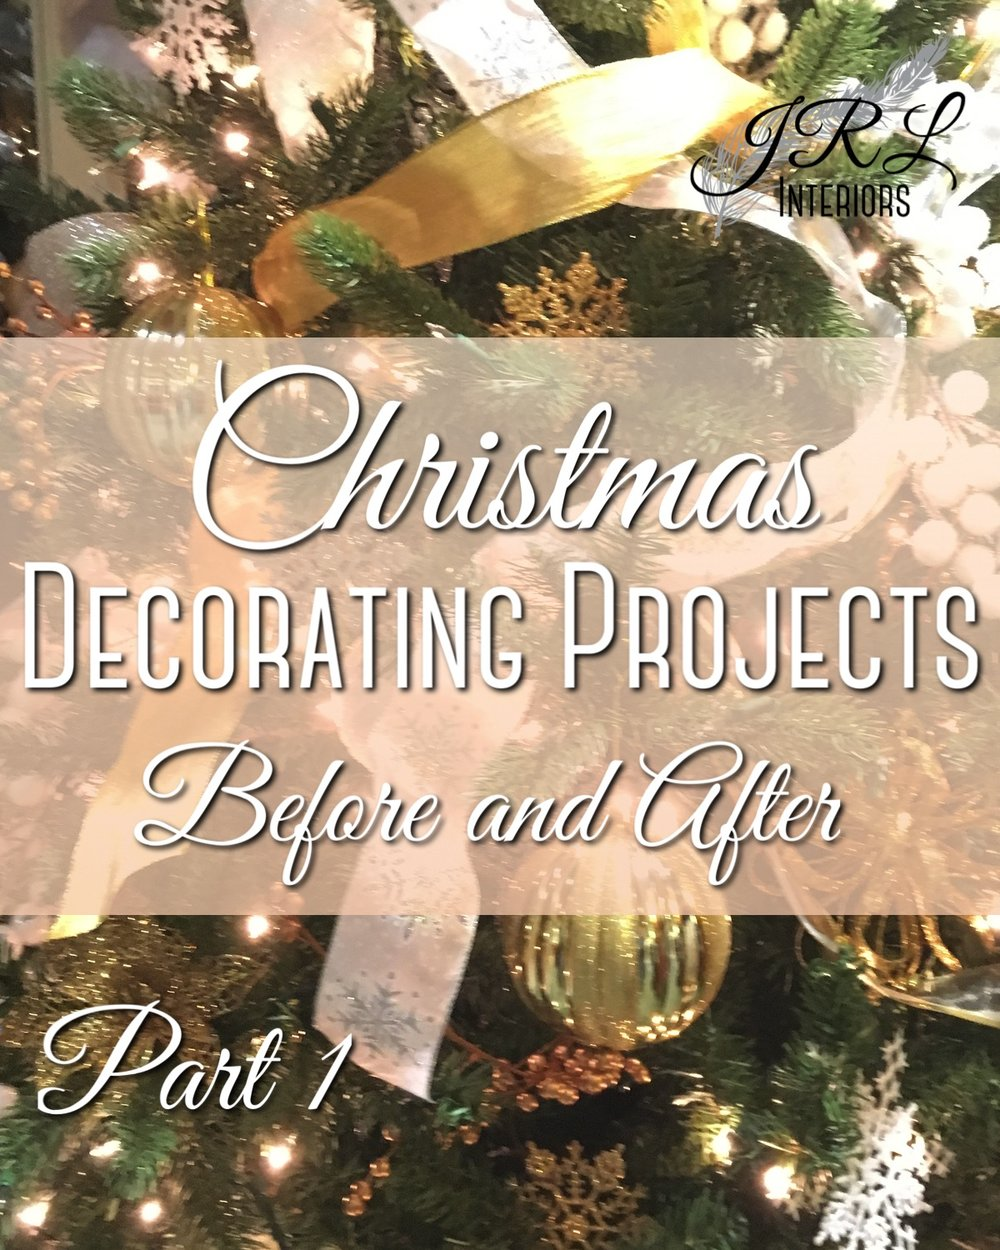 Christmas Decorating Projects Part 1